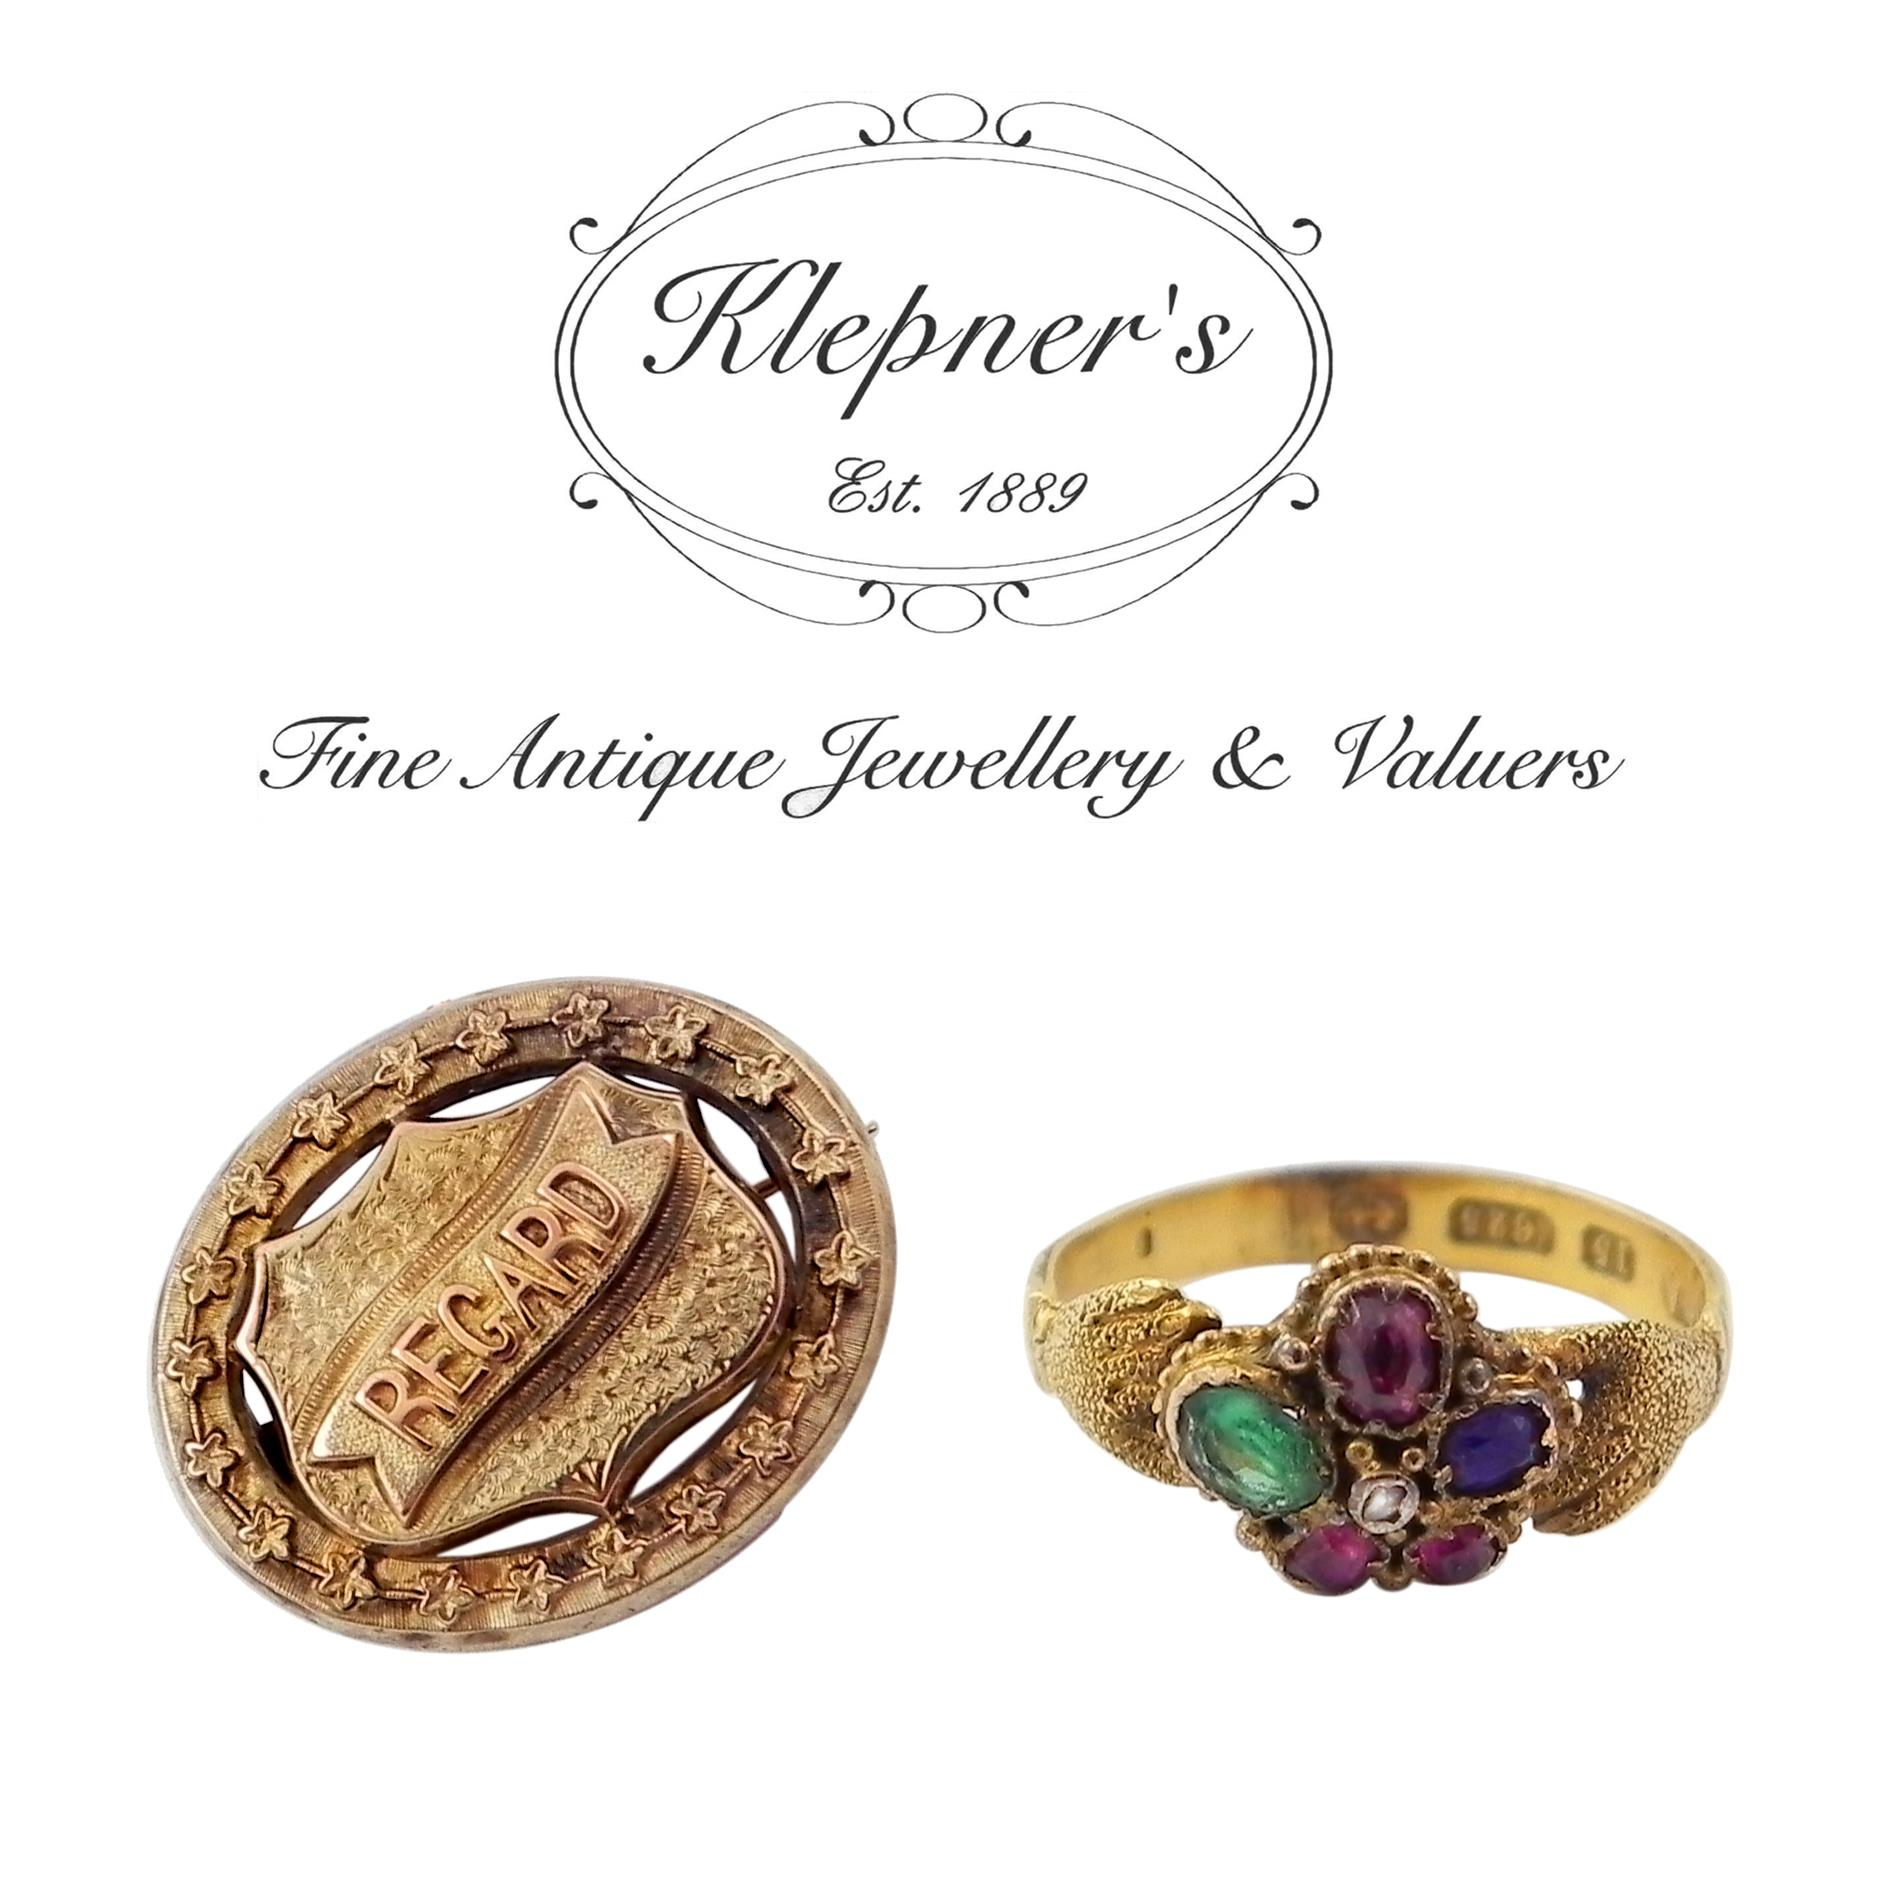 Antique Rgard and Dearest Rings and Jewellery